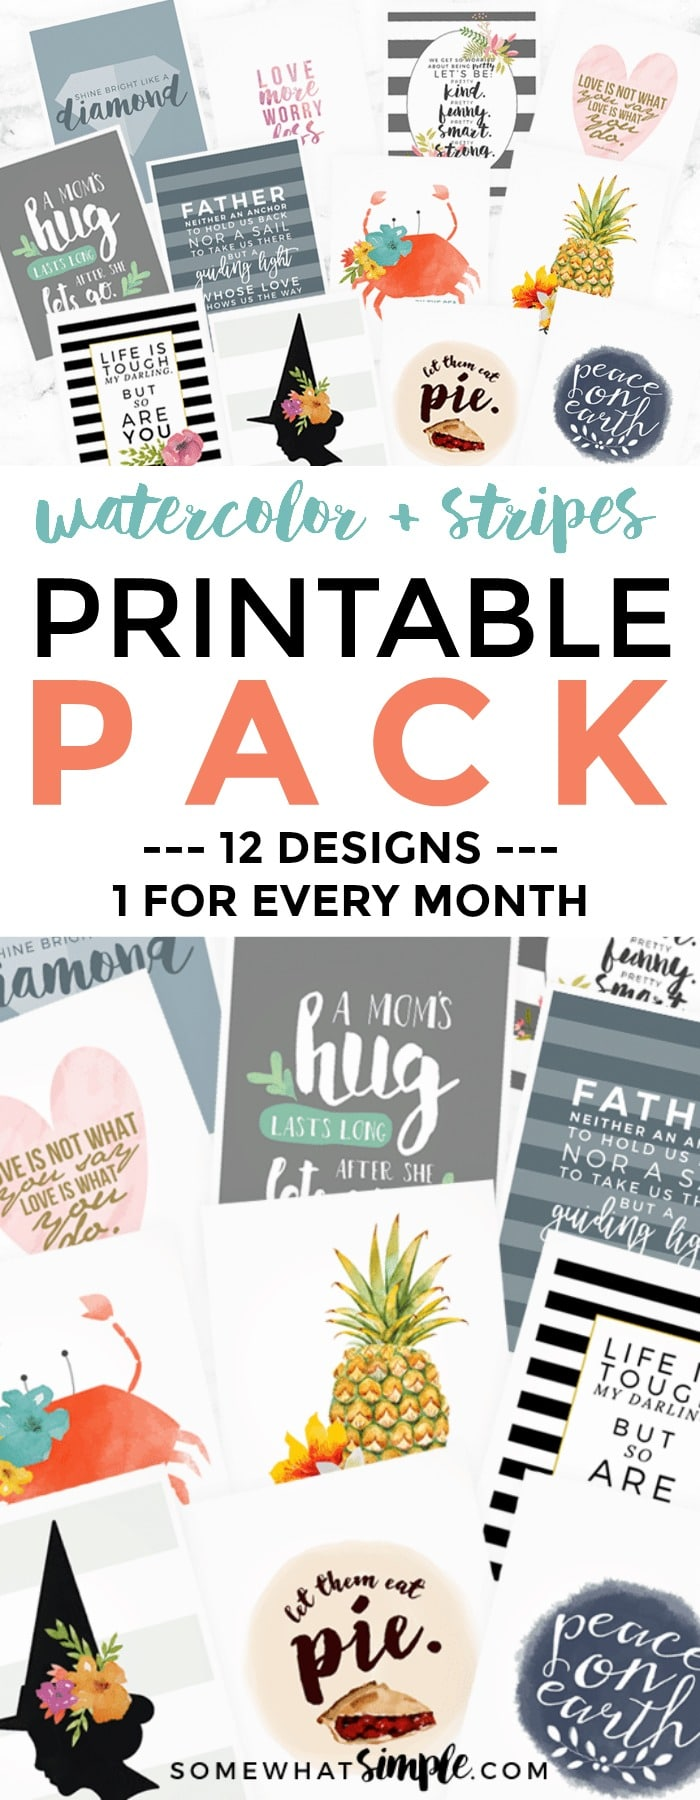 We're making decorating on a budget even easier with 12 Printable Quotes!